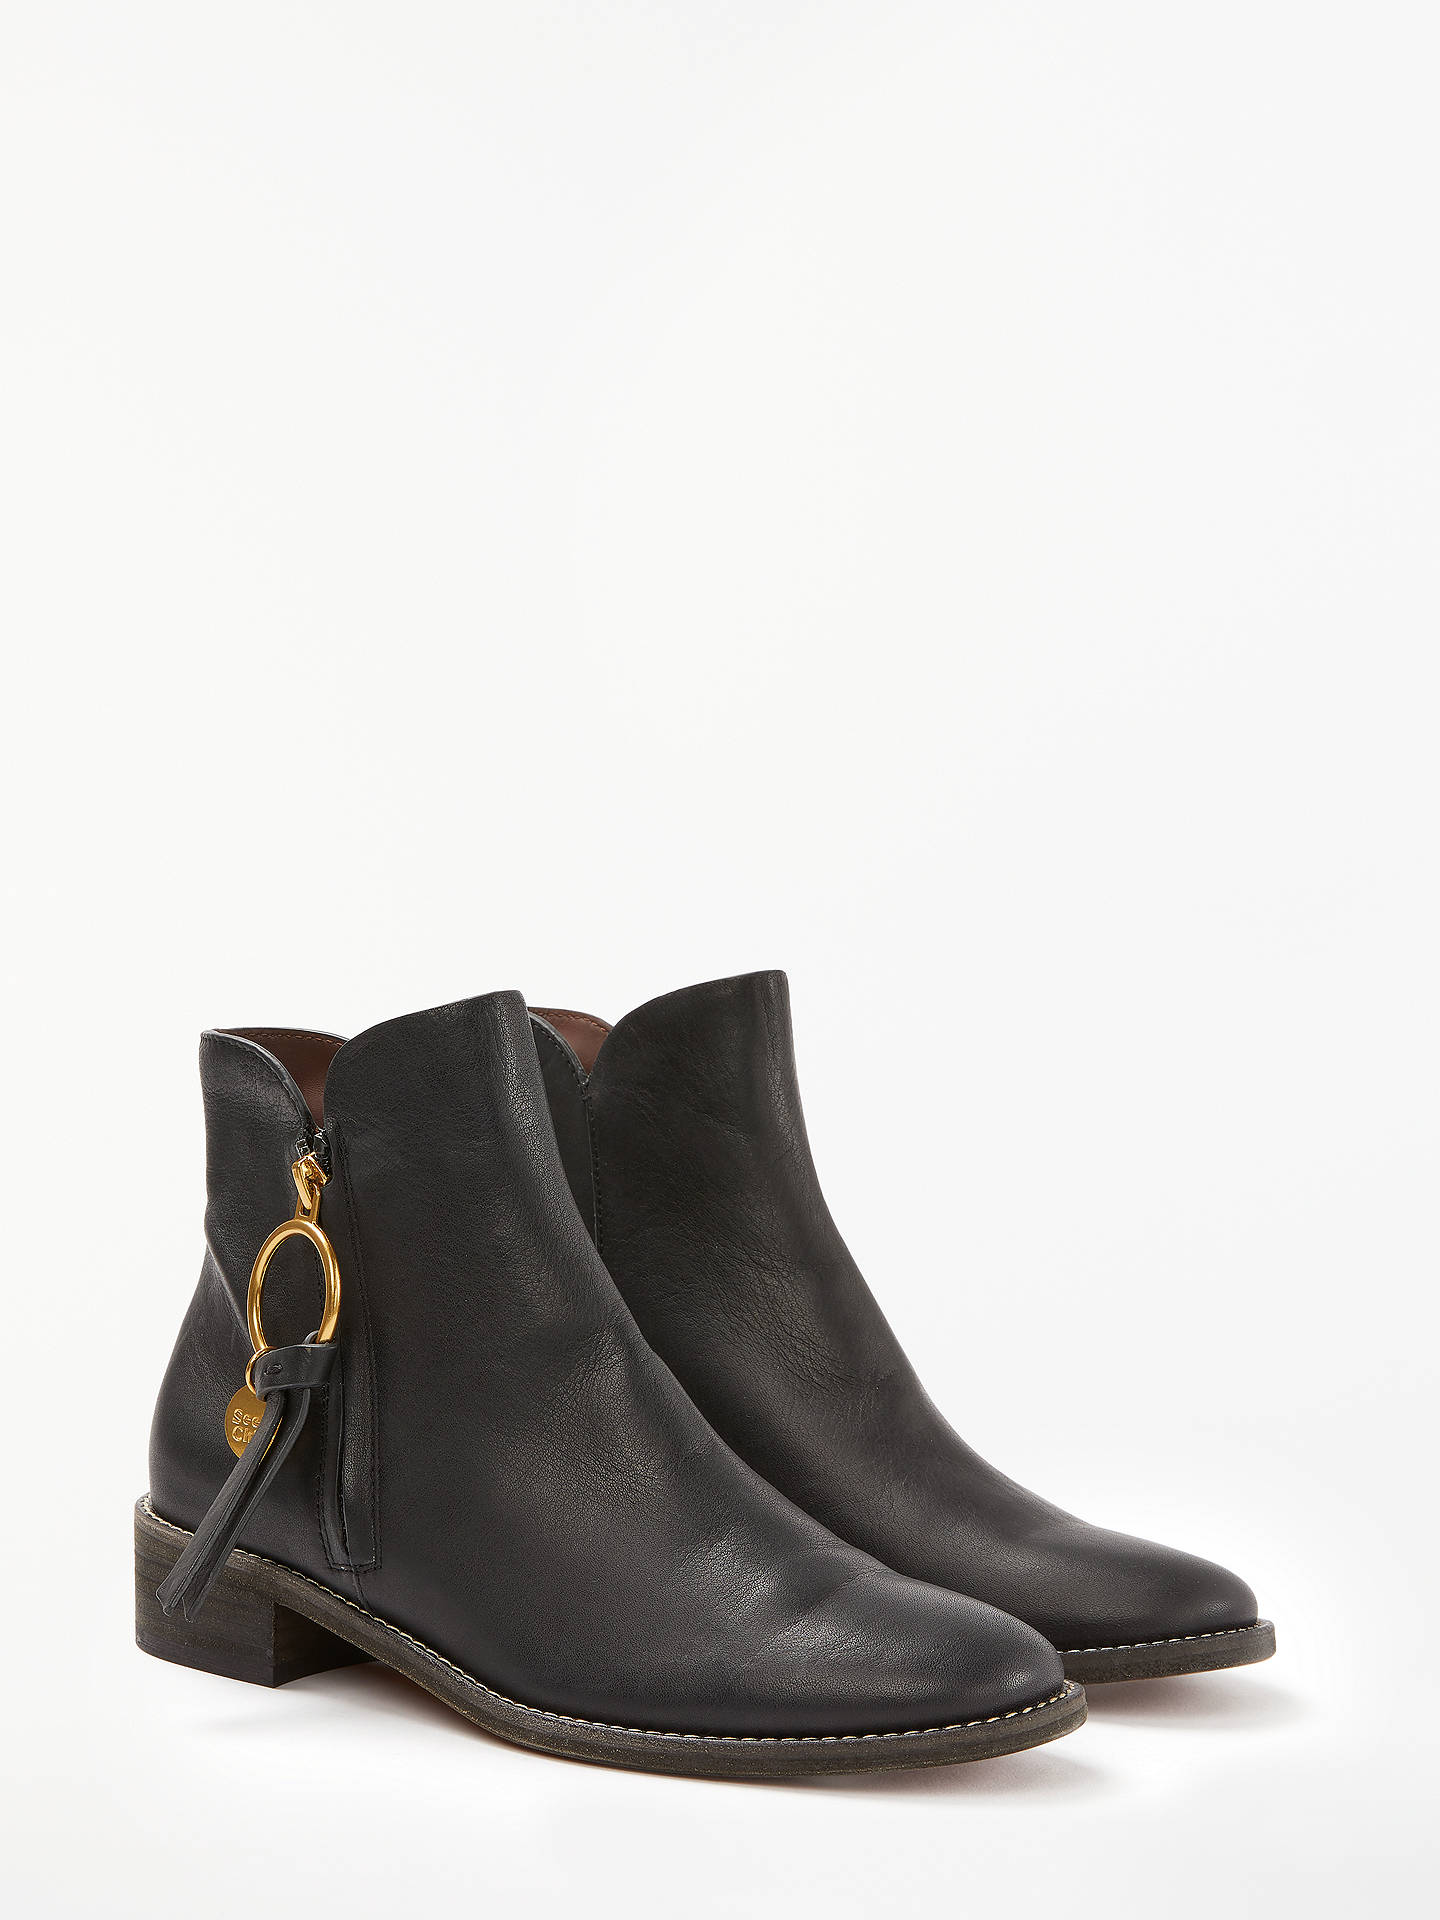 d3d80e491873 ... Buy See By Chloé Low Heel Ankle Boots